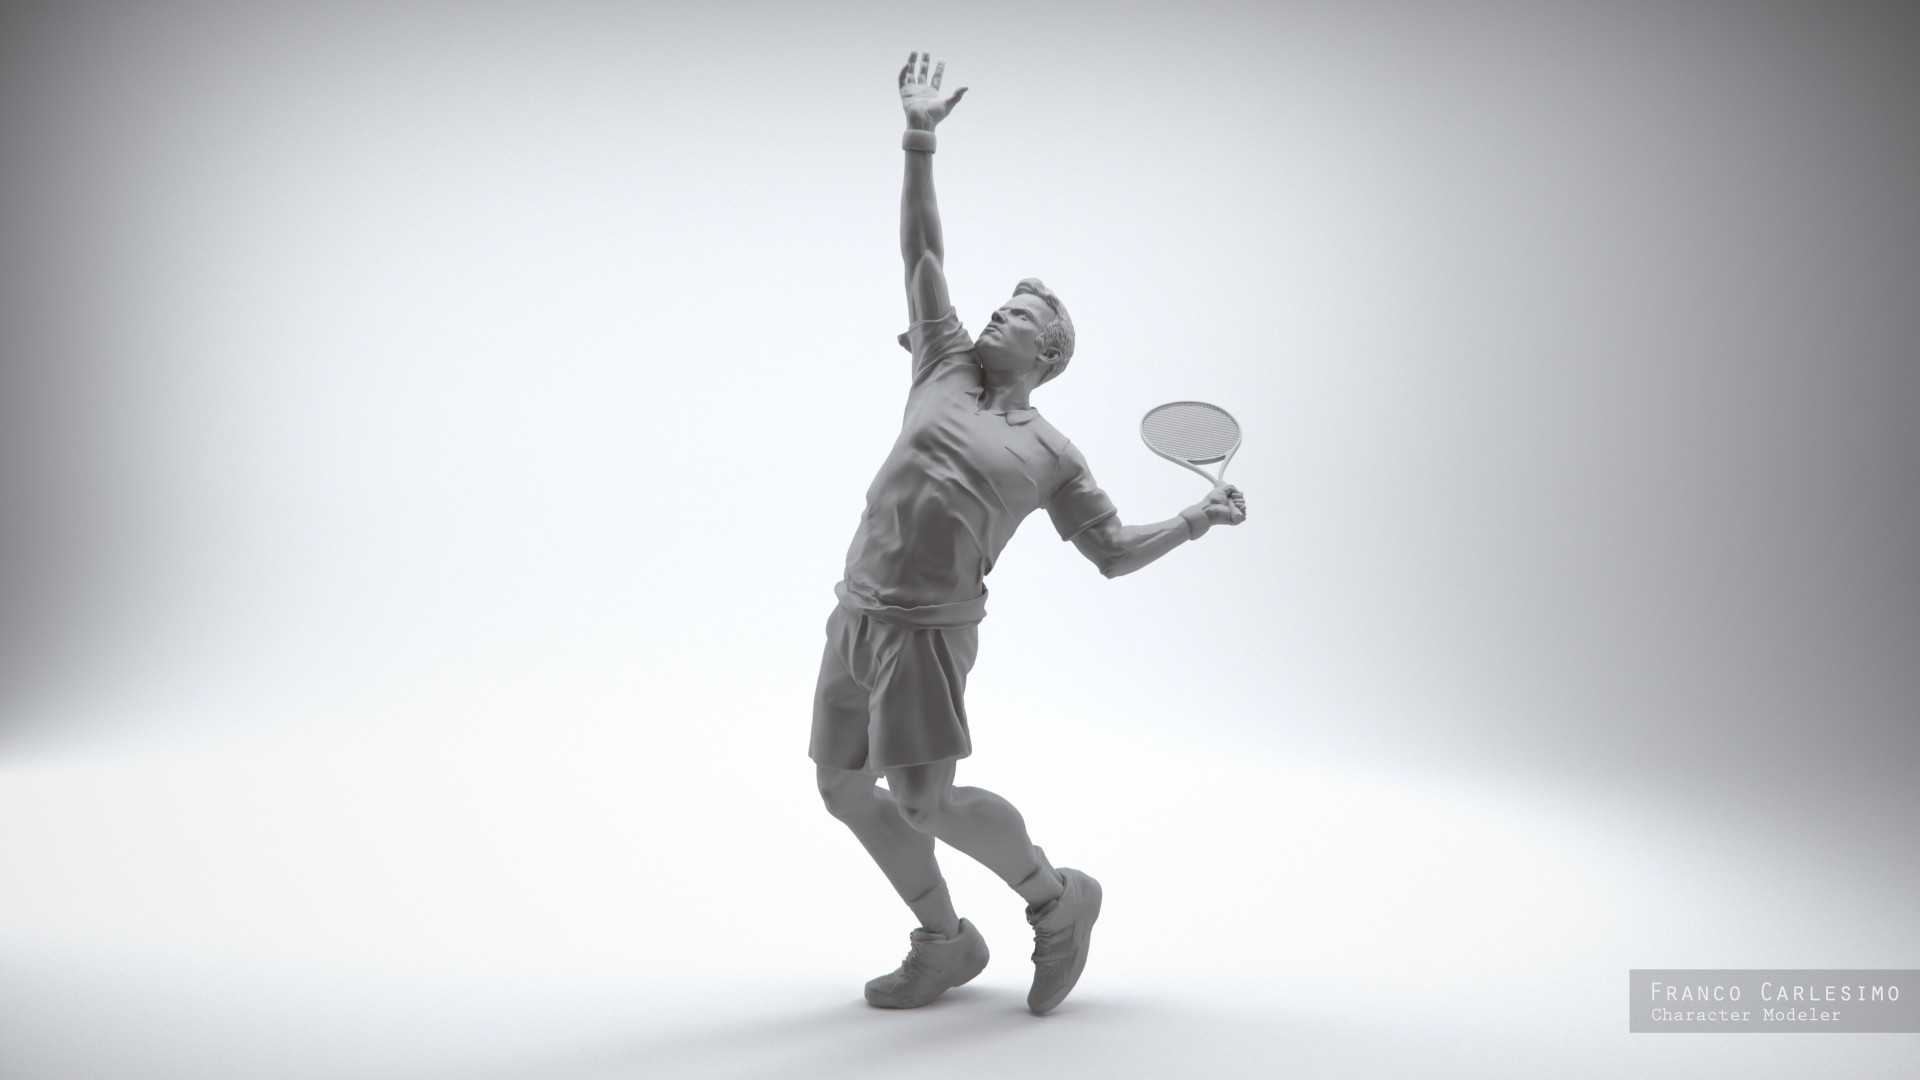 Franco carlesimo players 00004